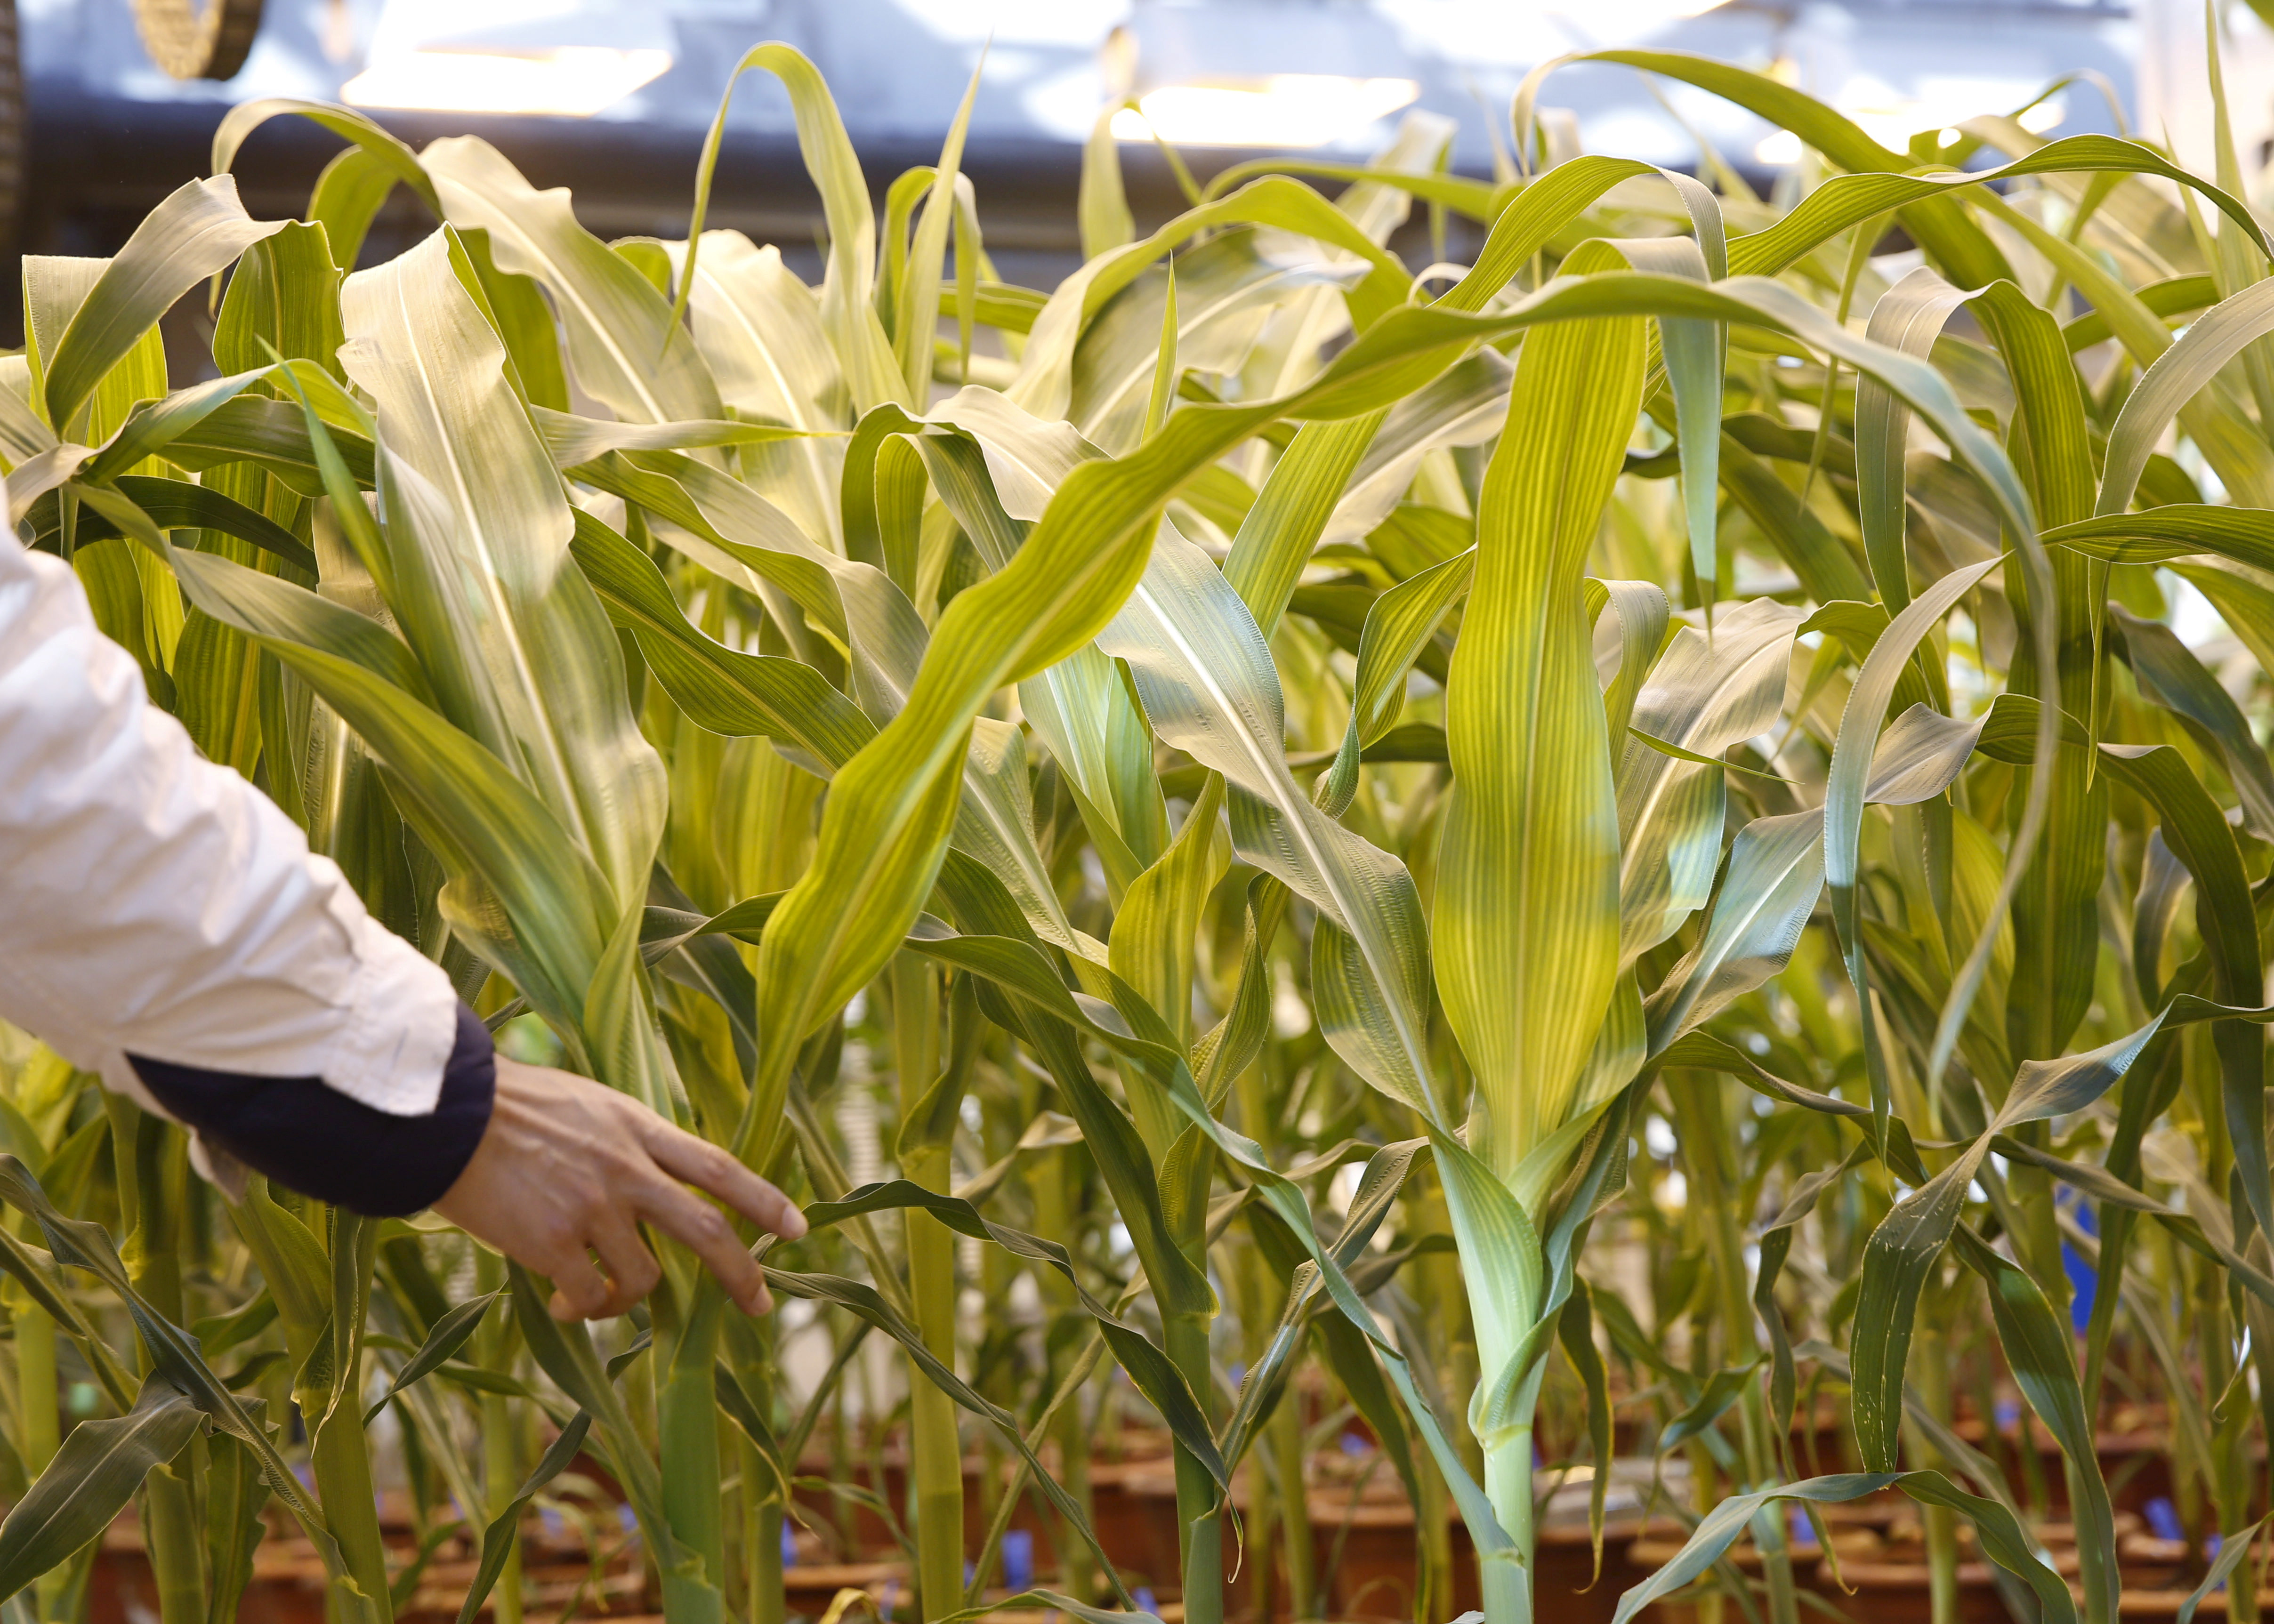 A researcher checks on corn plants in a green house cultivating natural corn and genetically modified corn in Syngenta Biotech Center in Beijing